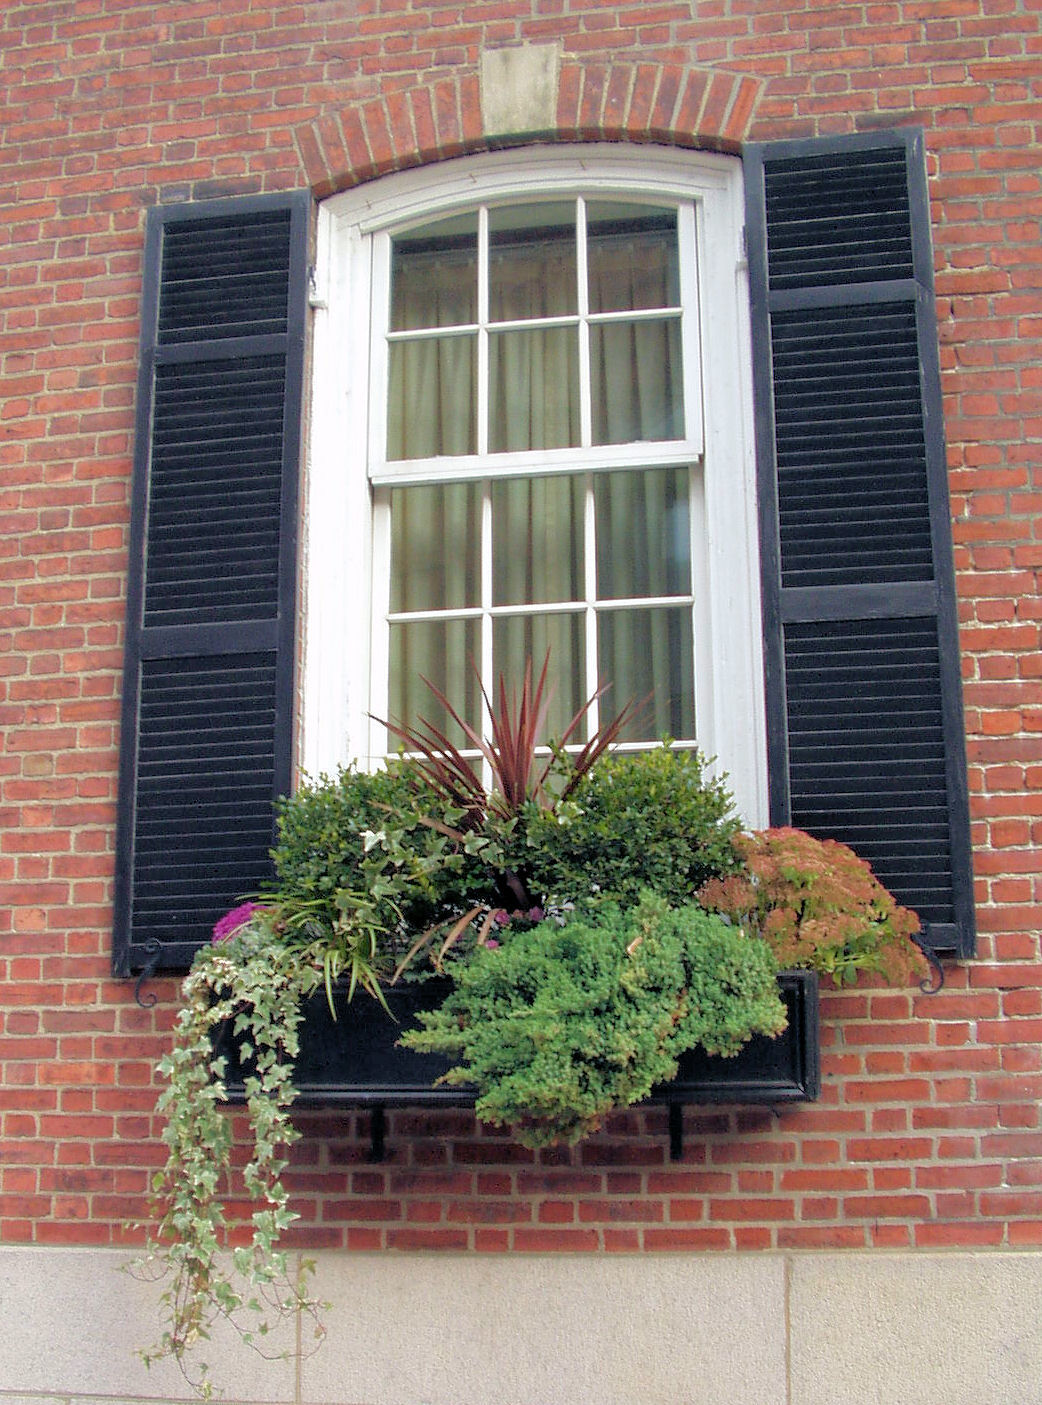 Christmas window box filler - A Pretty Window Box Filled With A Variety Of Greenery